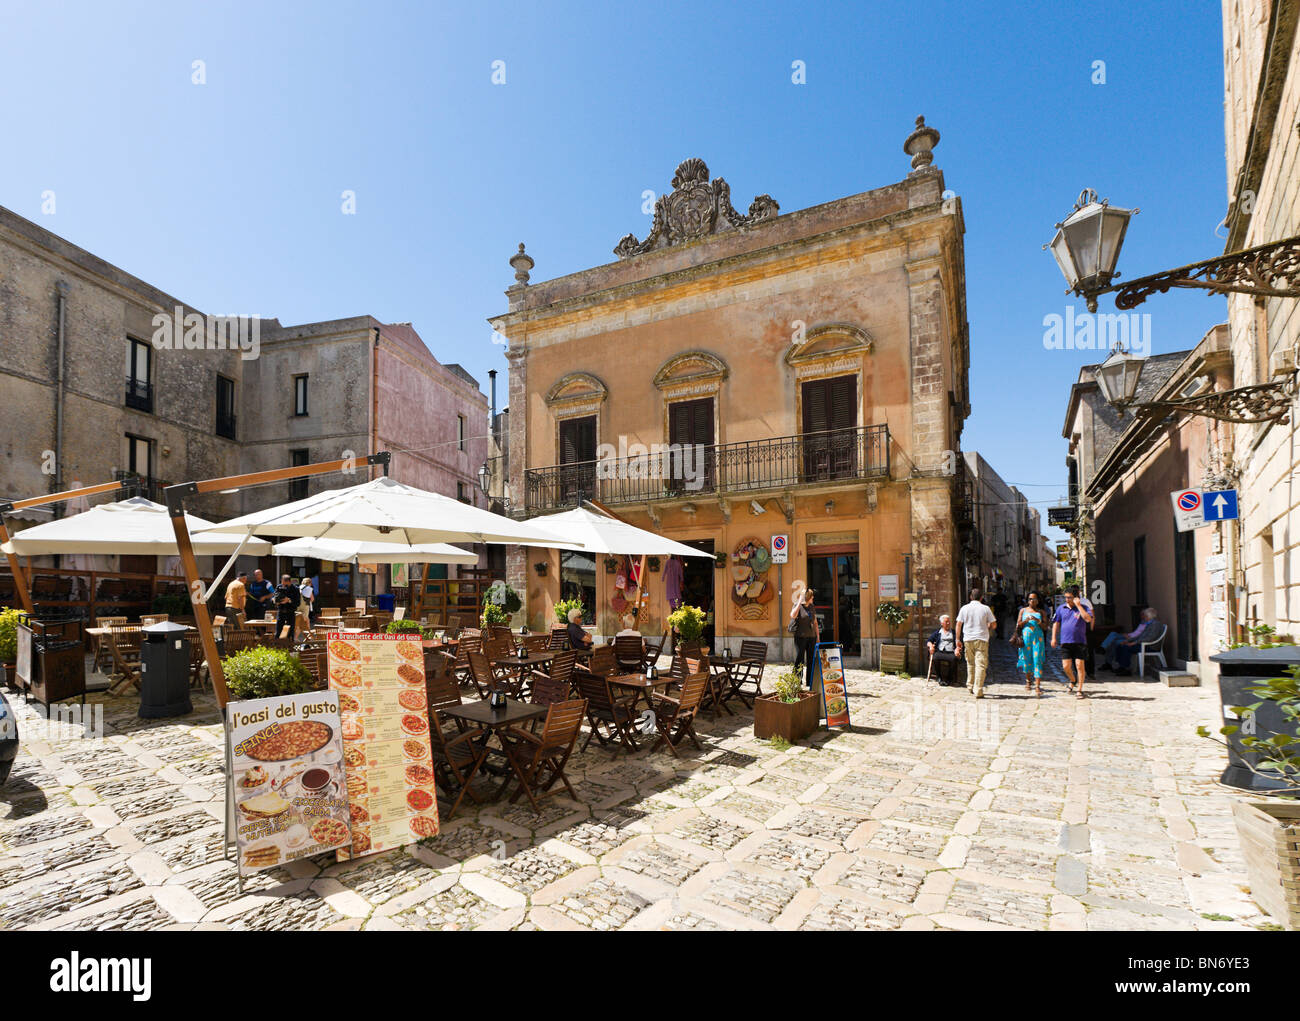 Restaurant in Piazza Umberto (the Main Square), Erice, Trapani region, North West Sicily, Italy Stock Photo